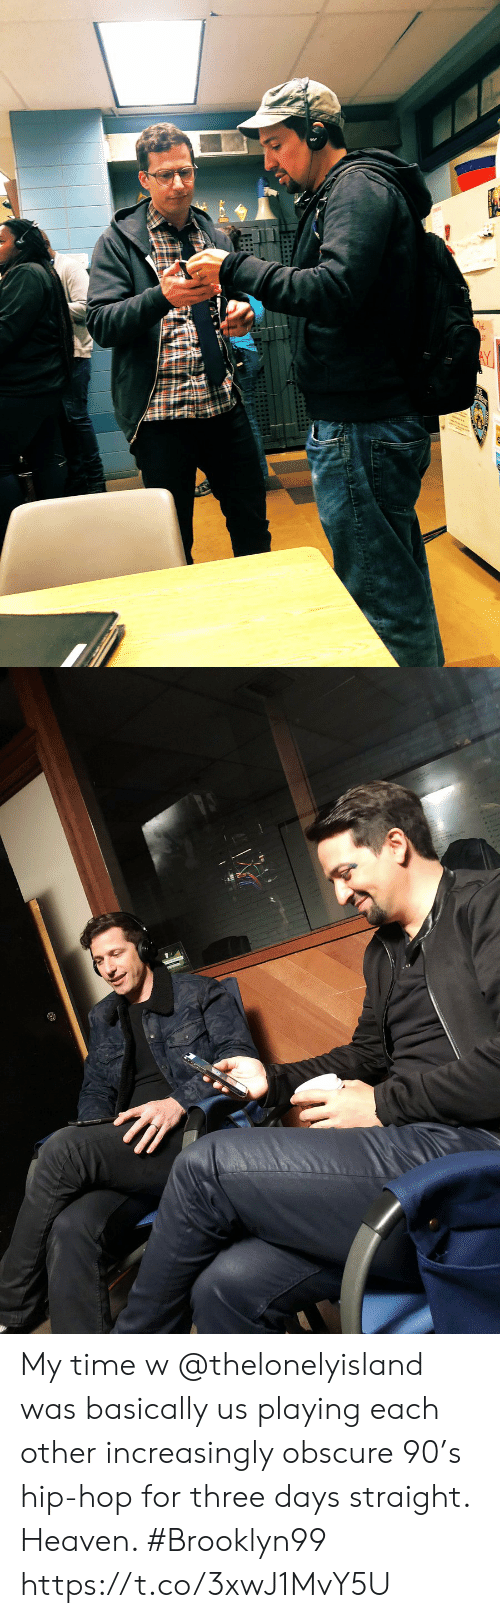 Heaven, Memes, and Time: My time w @thelonelyisland was basically us playing each other increasingly obscure 90's hip-hop for three days straight. Heaven. #Brooklyn99 https://t.co/3xwJ1MvY5U